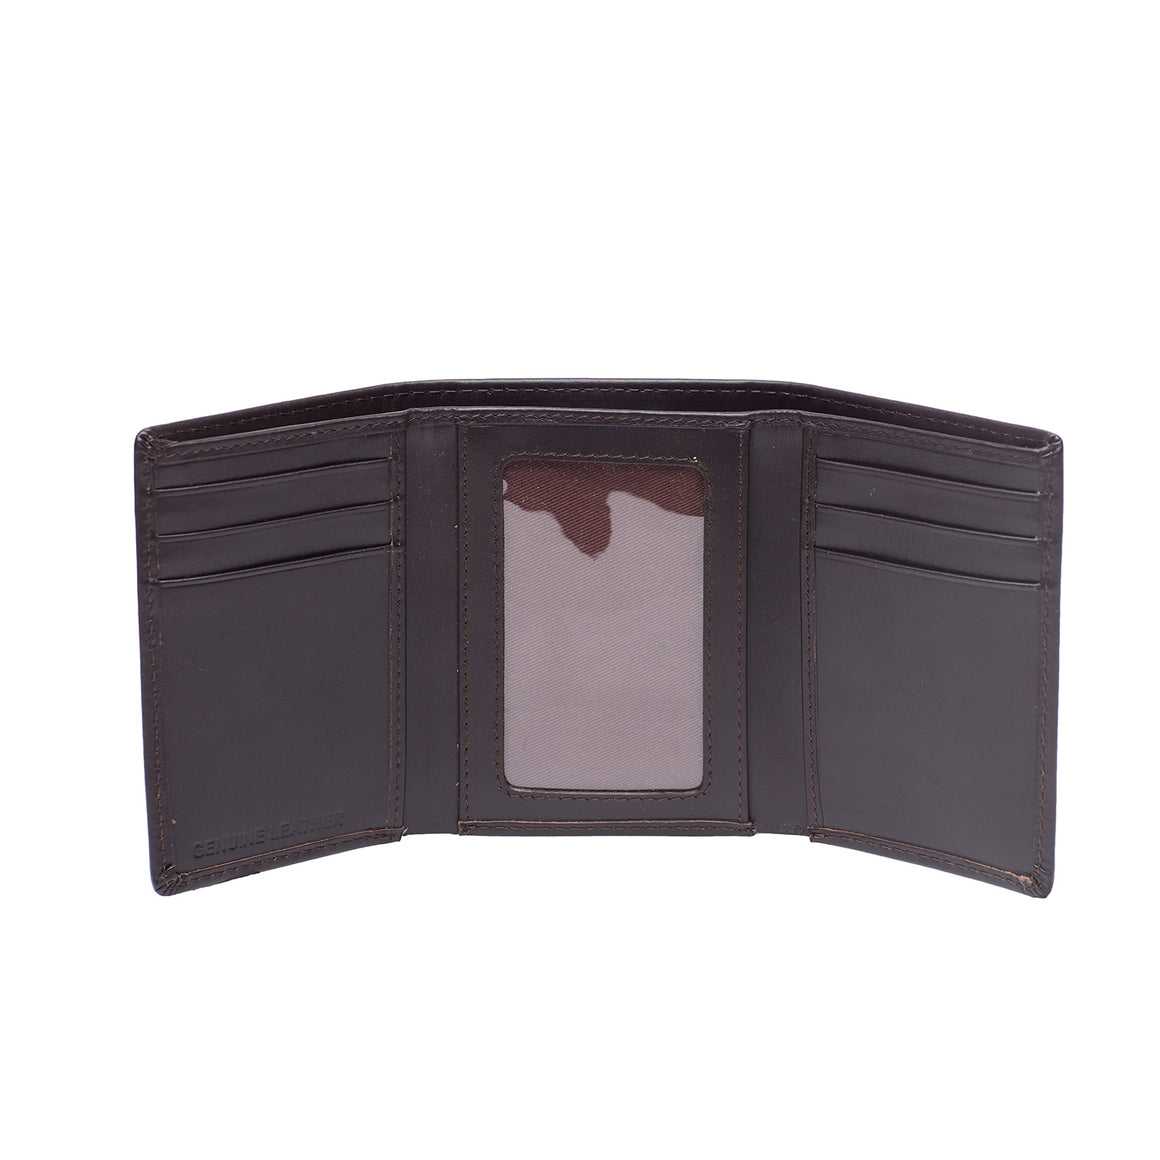 WT 0033 - TOHL SETTALA MEN'S WALLET - DARK BROWN